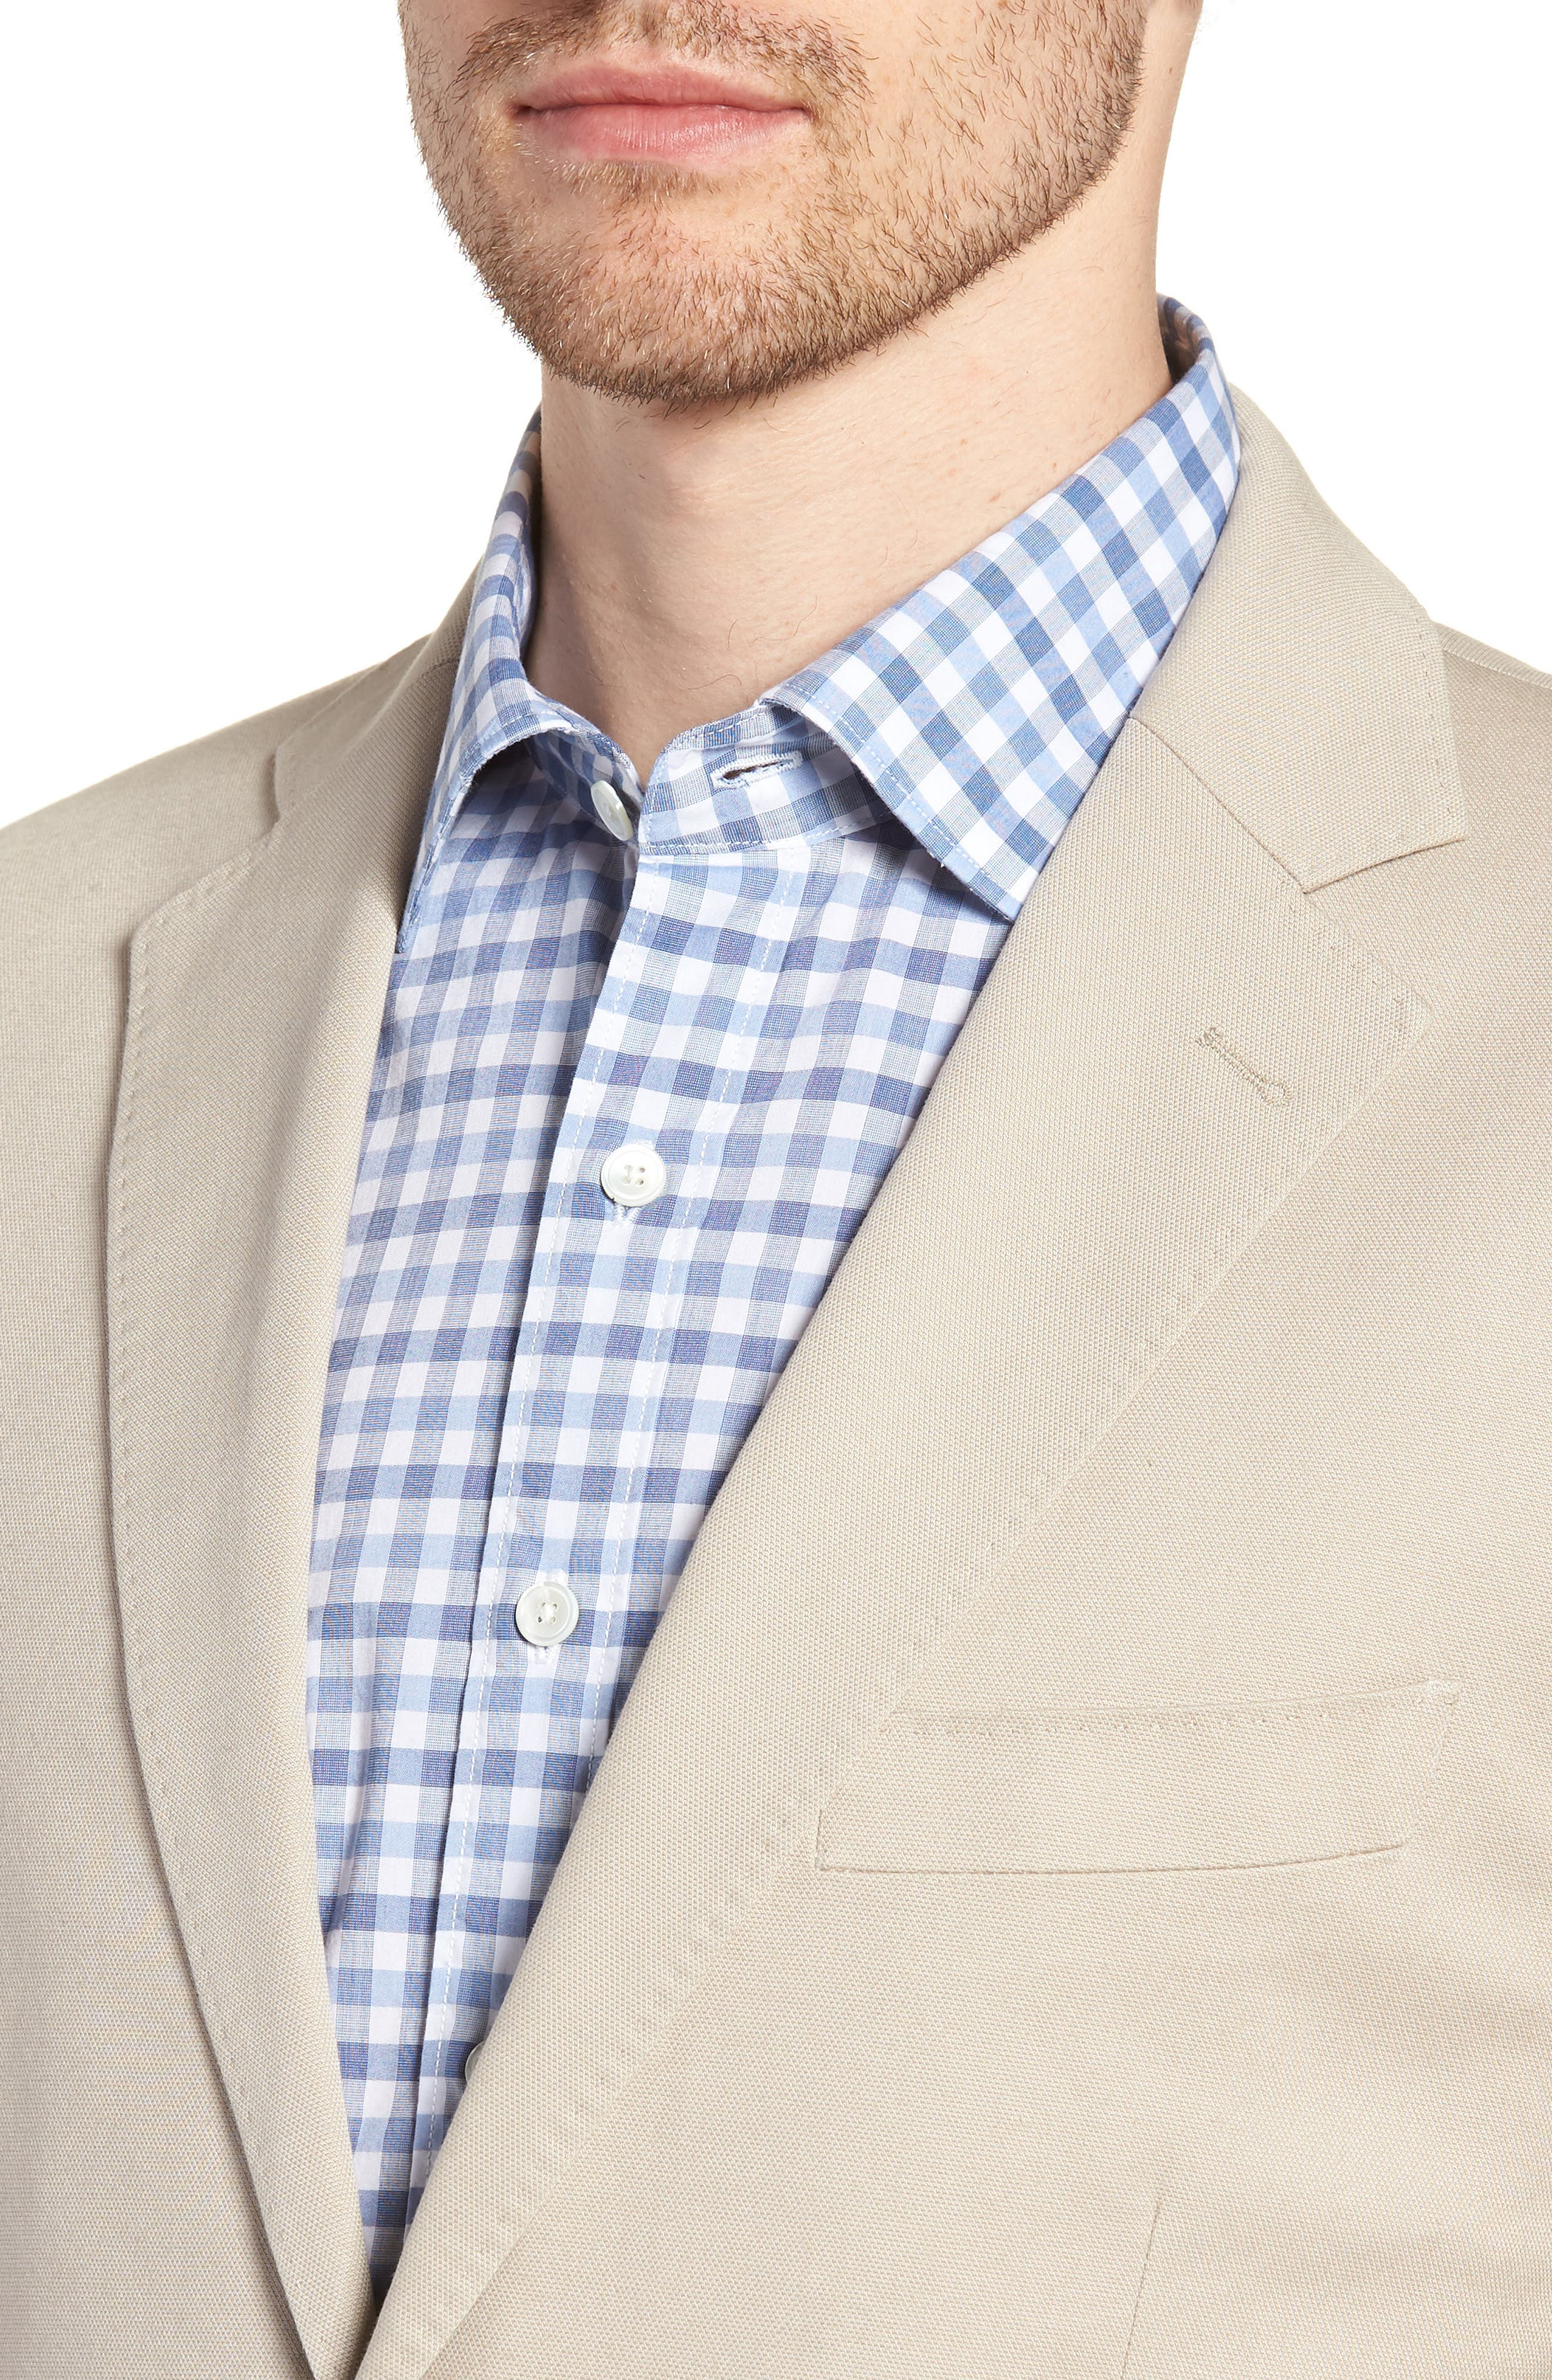 Finchley Regular Fit Sportcoat,                             Alternate thumbnail 4, color,                             102